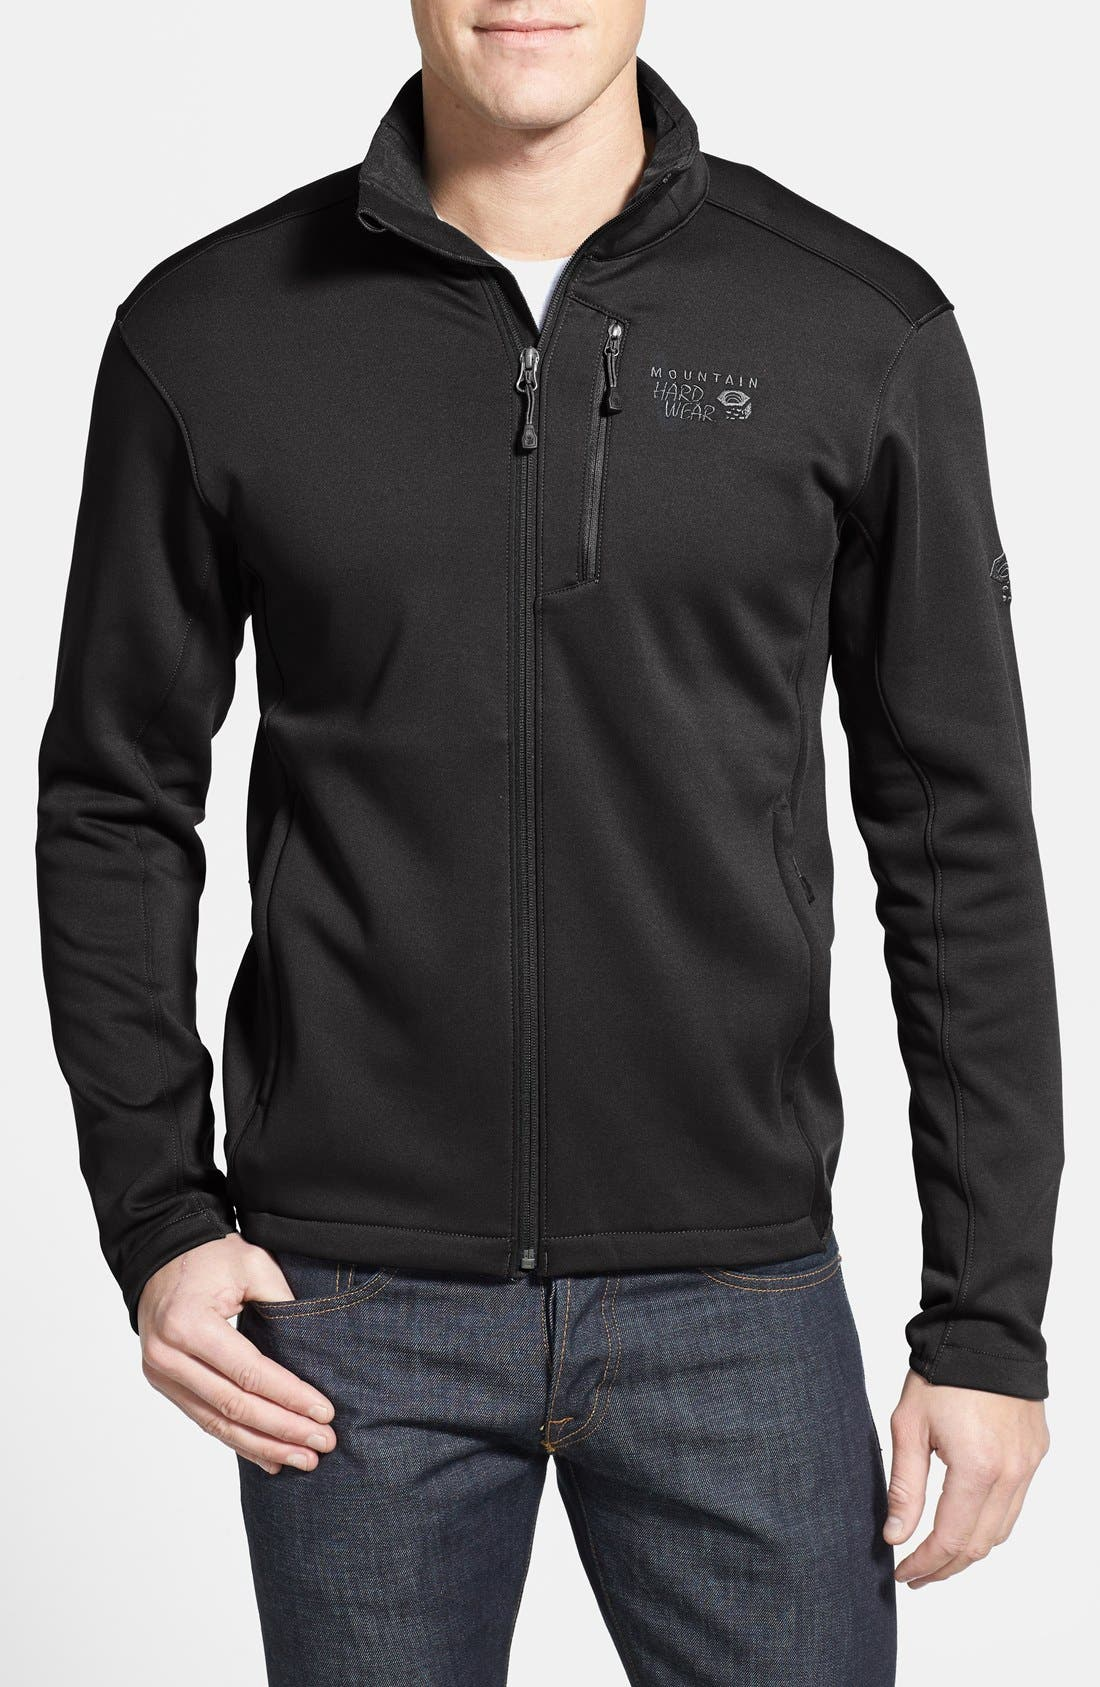 Alternate Image 1 Selected - Mountain Hardwear 'Arlando™' Wind Resistant Full Zip Jacket